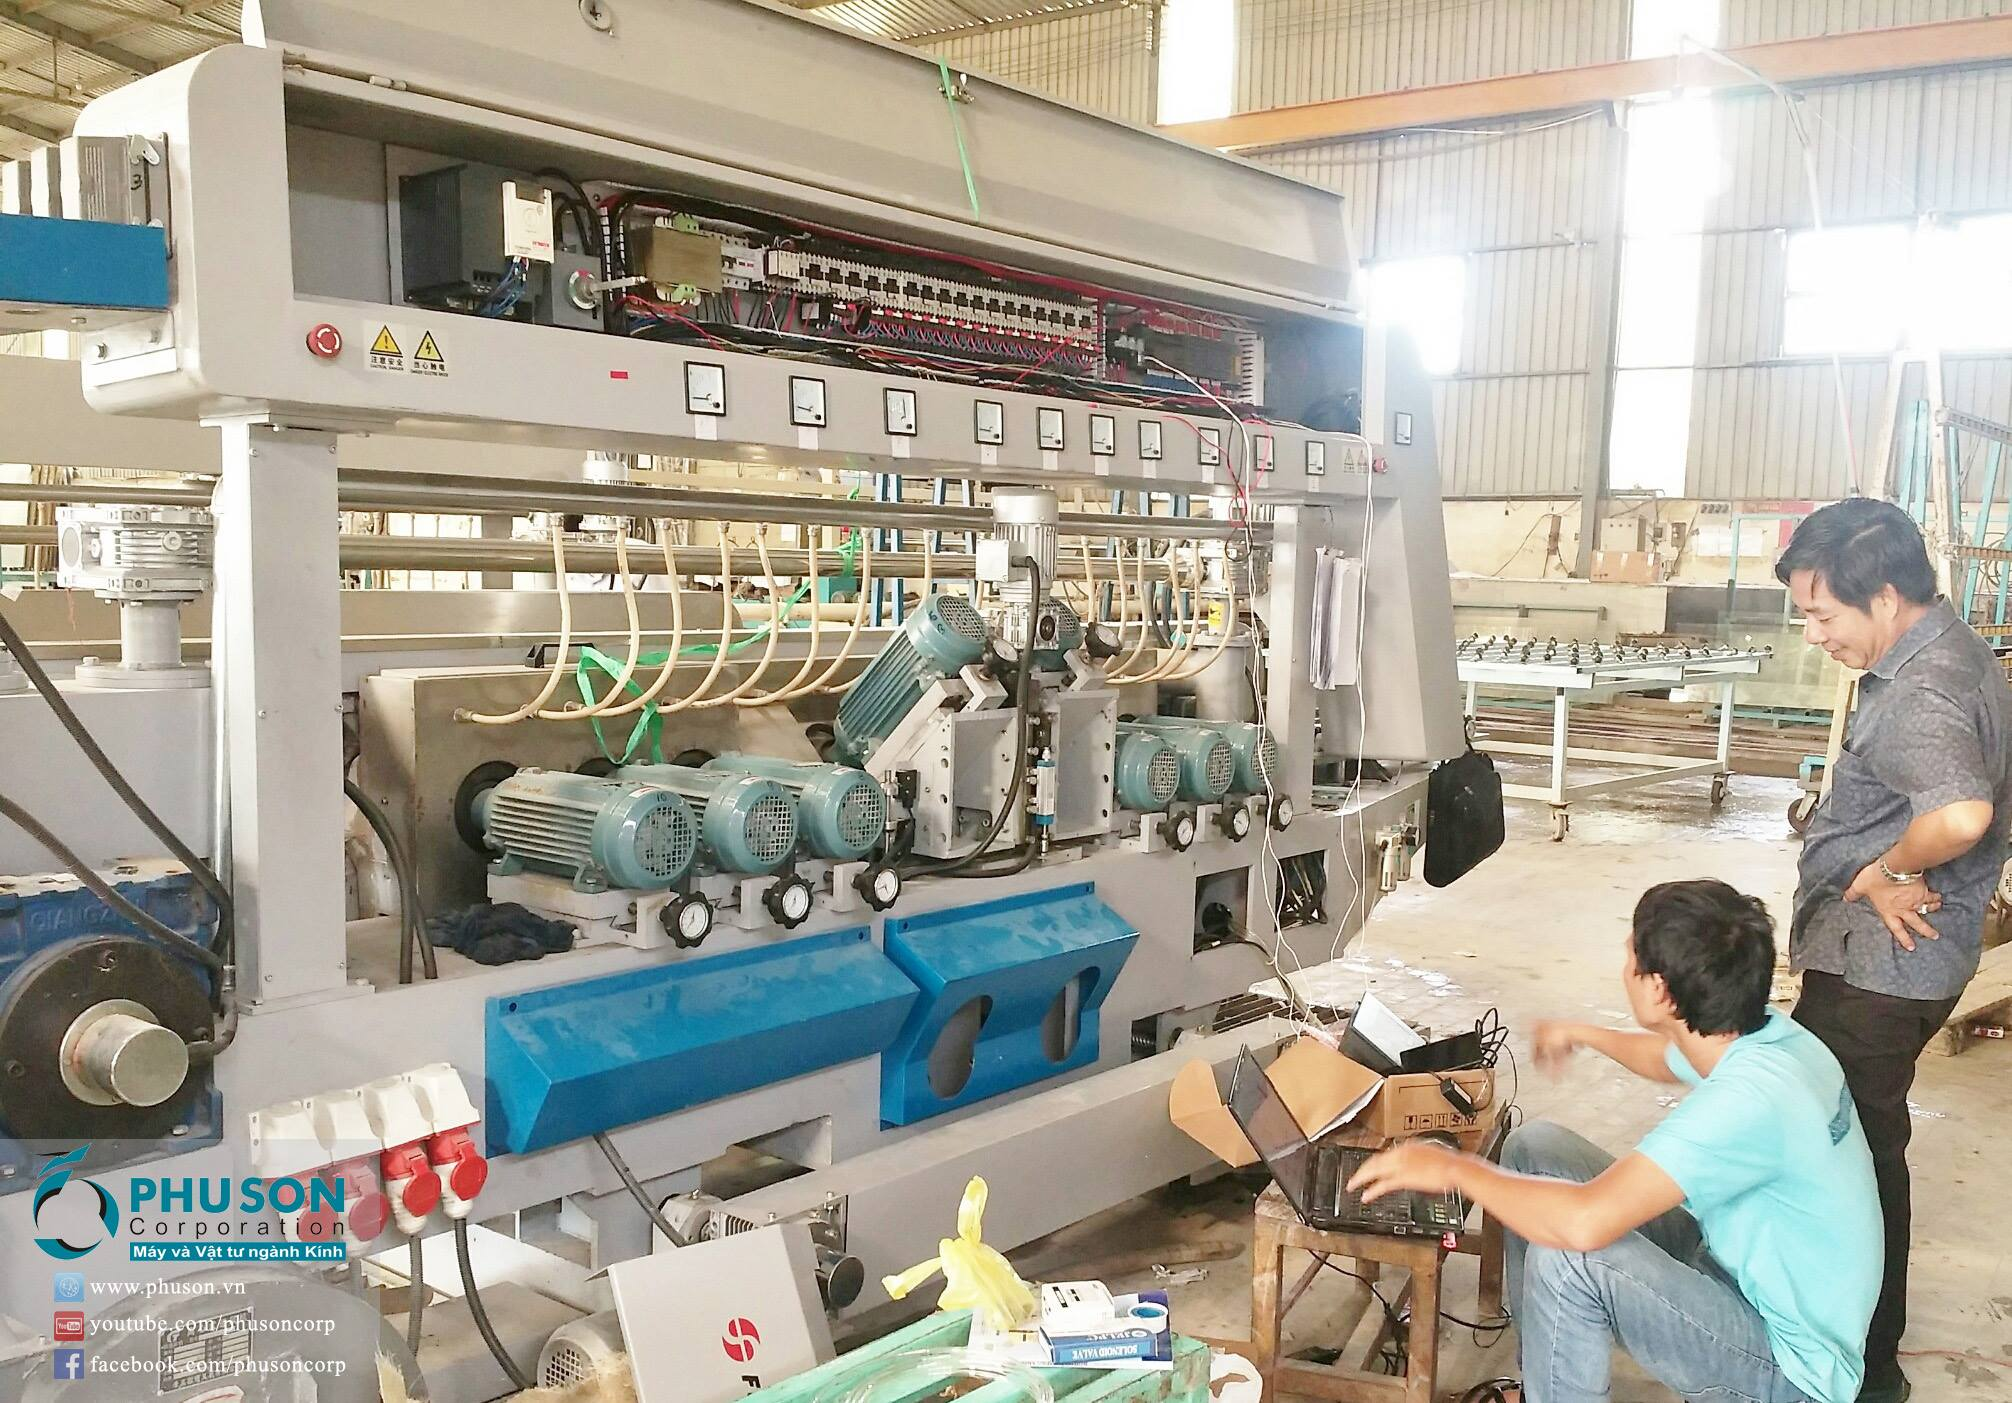 Complete the installation of FUSHAN Double Edging machine at THANH DAT GLASS